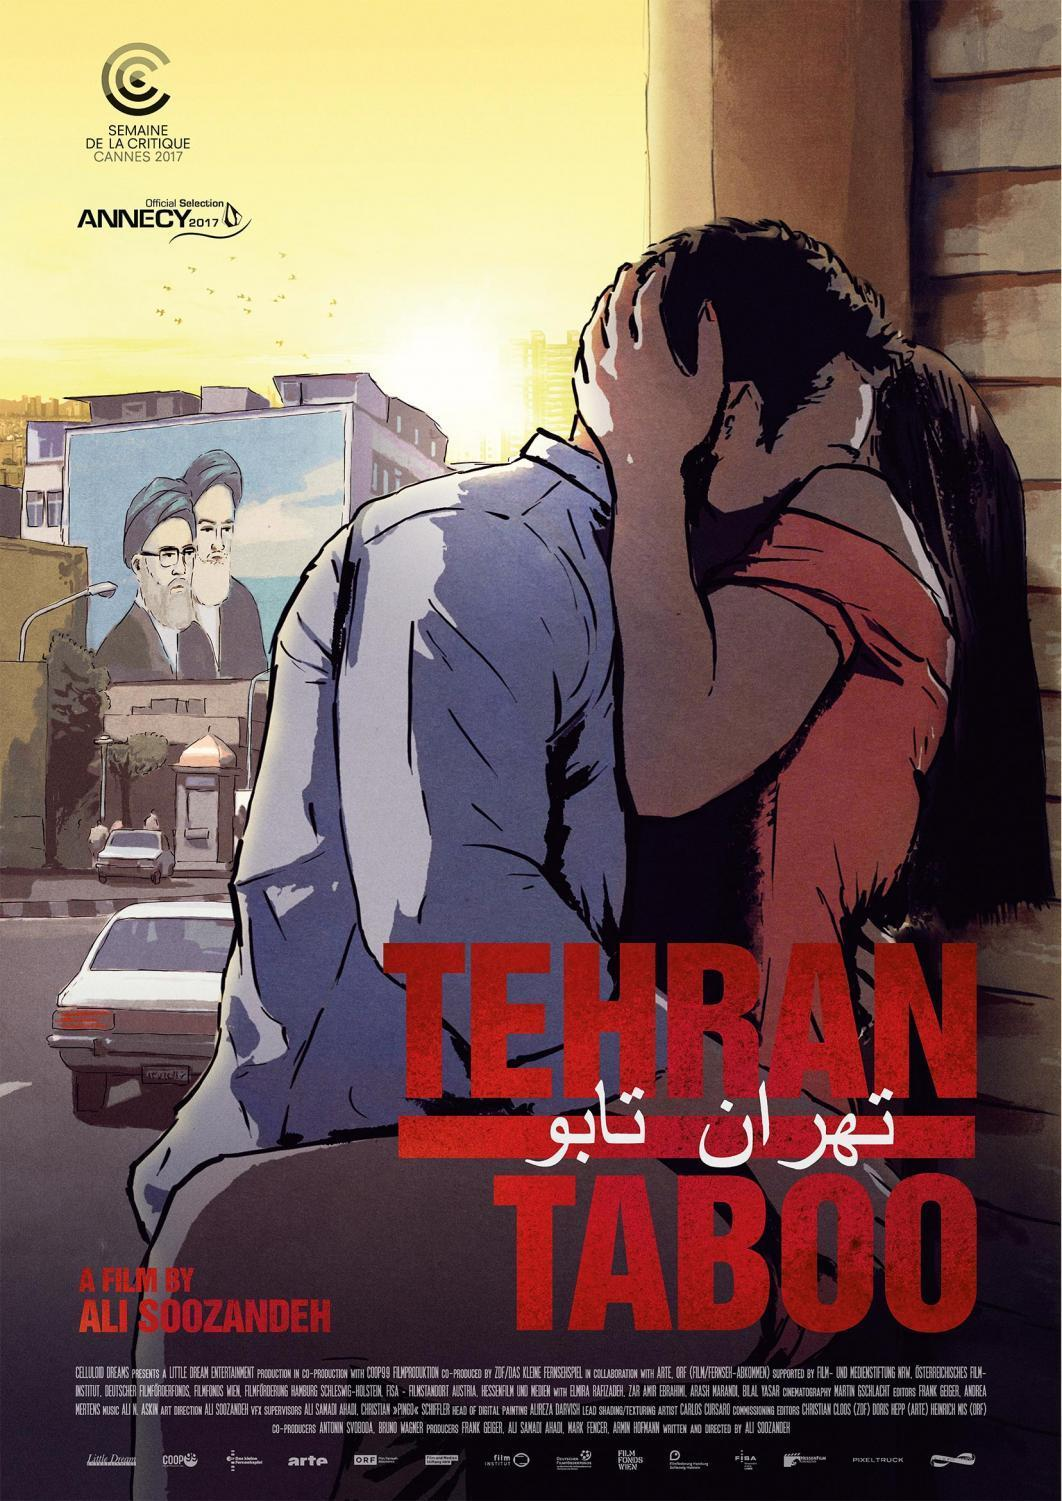 A poster for Tehran Taboo, a film by Ali Soozandeh.